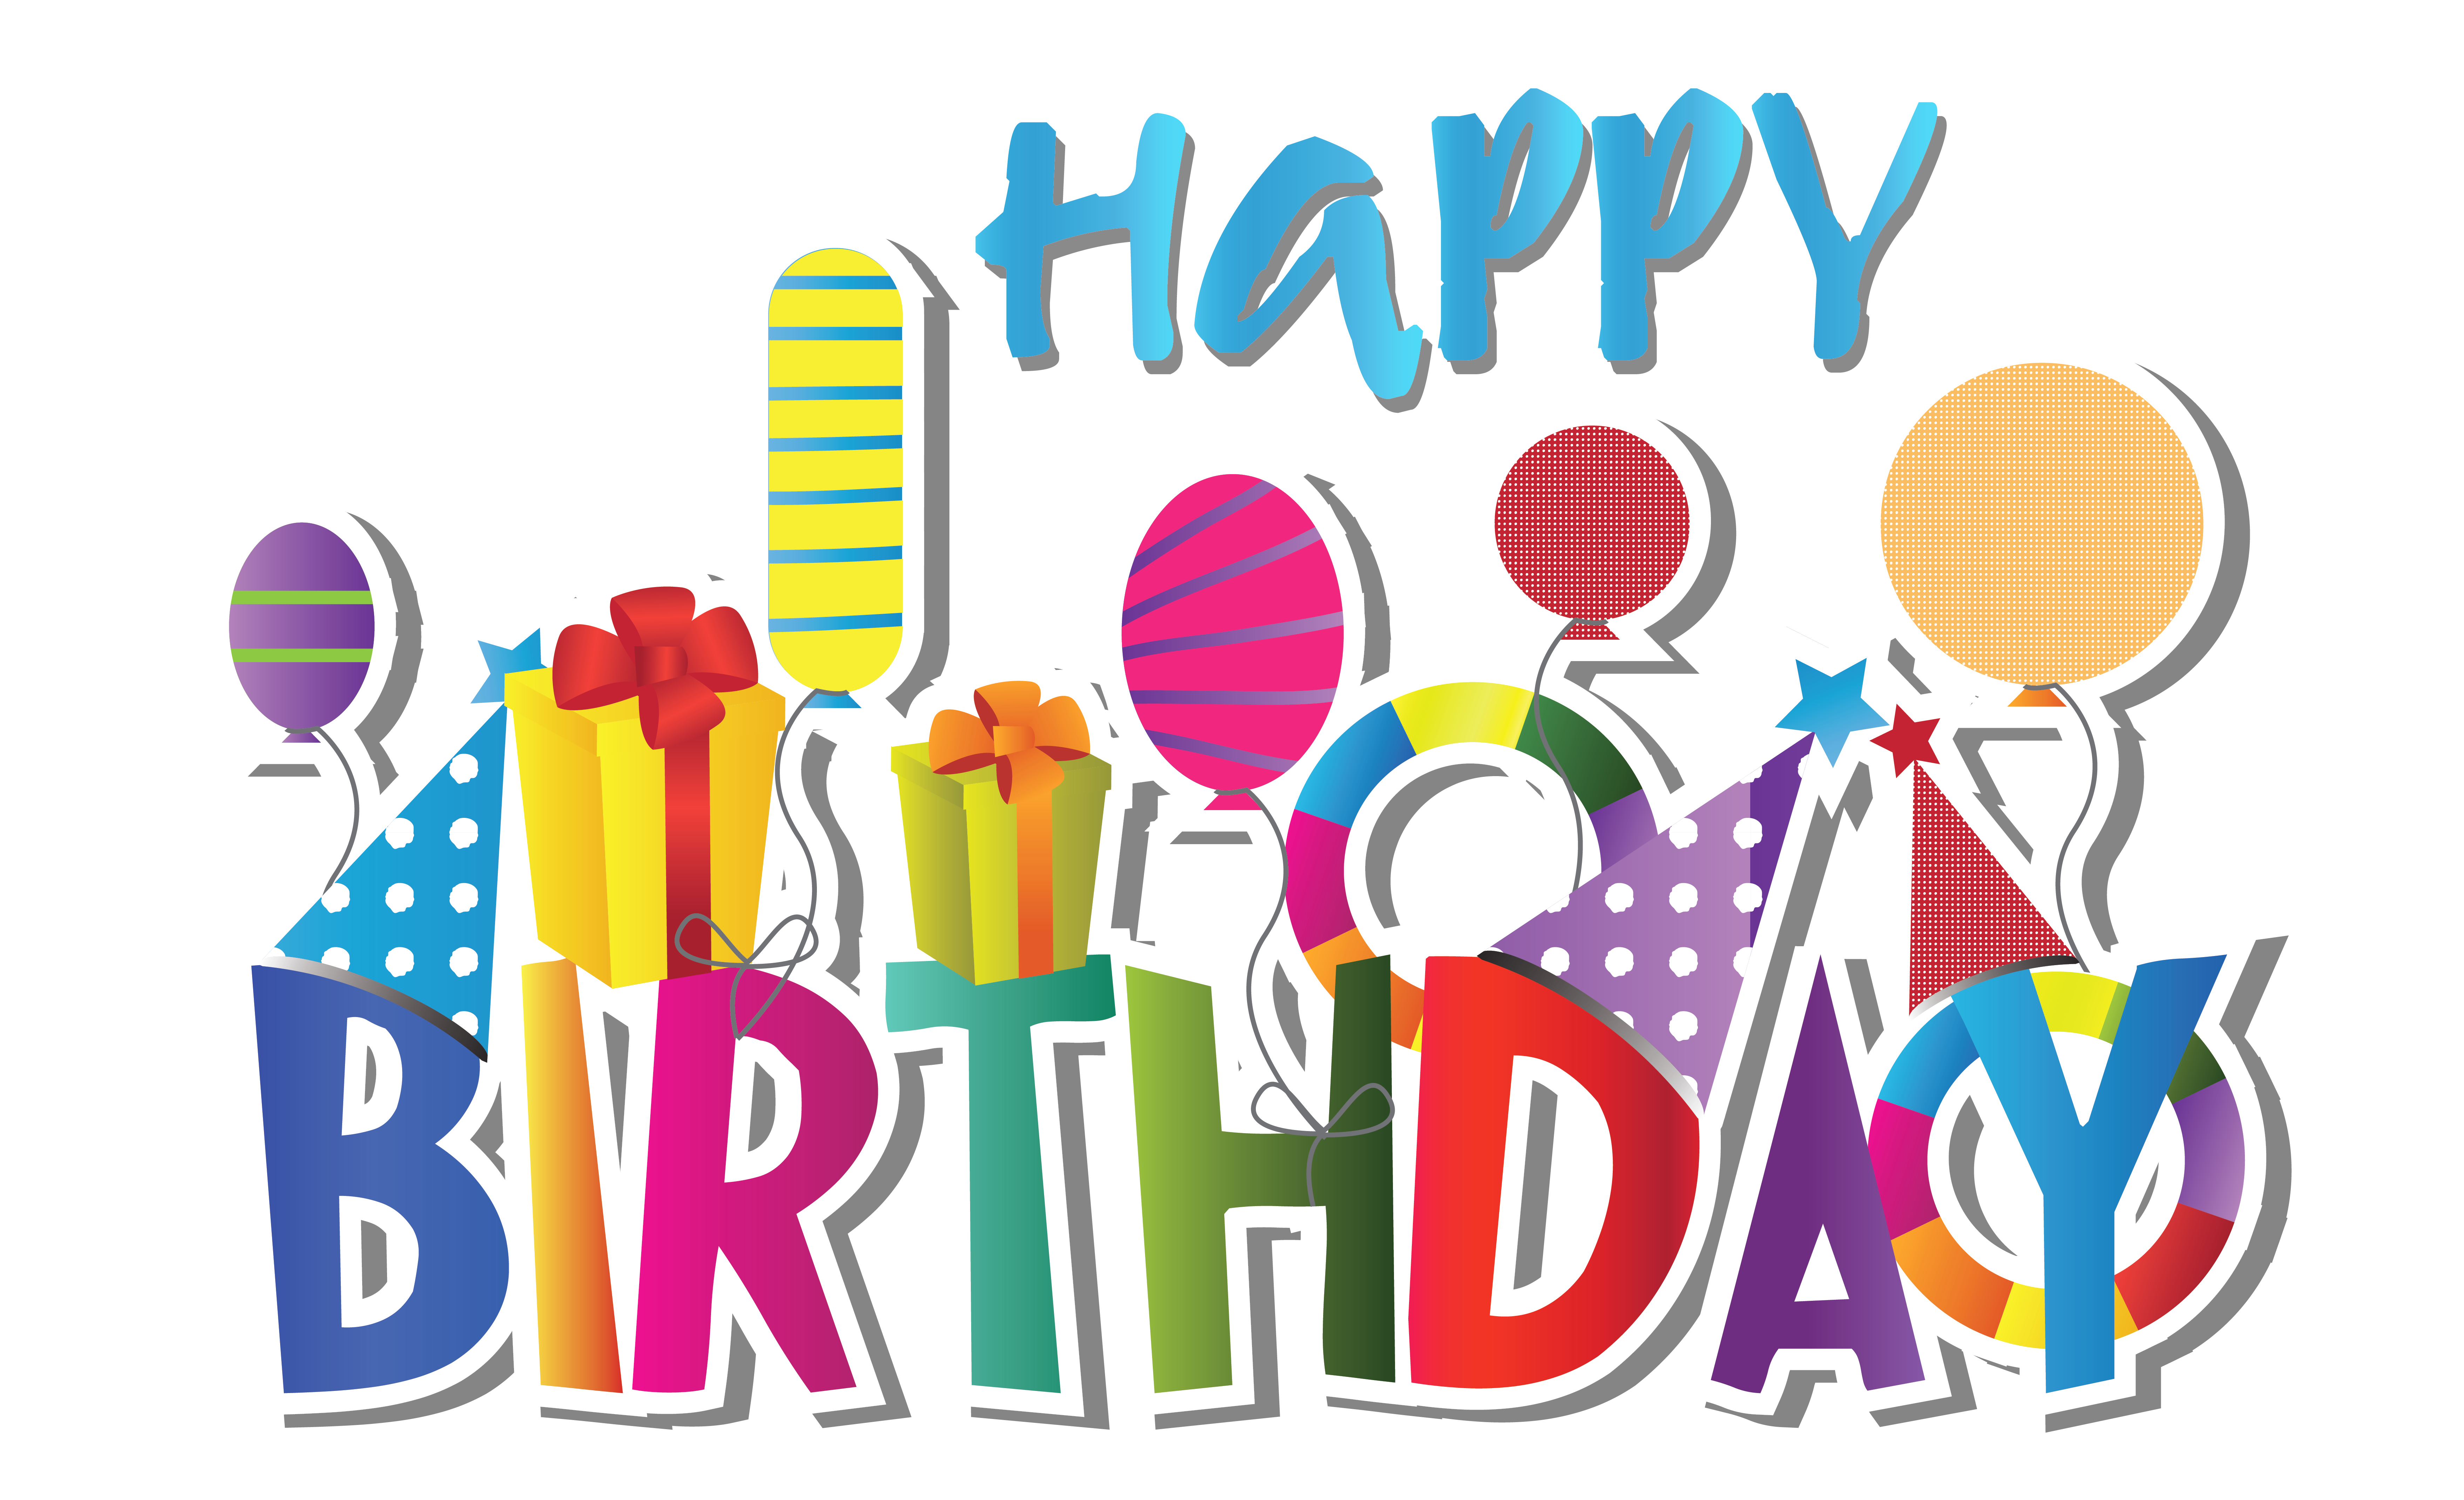 7028x4277 28+ Collection of Happy Birthday Clipart High quality, free